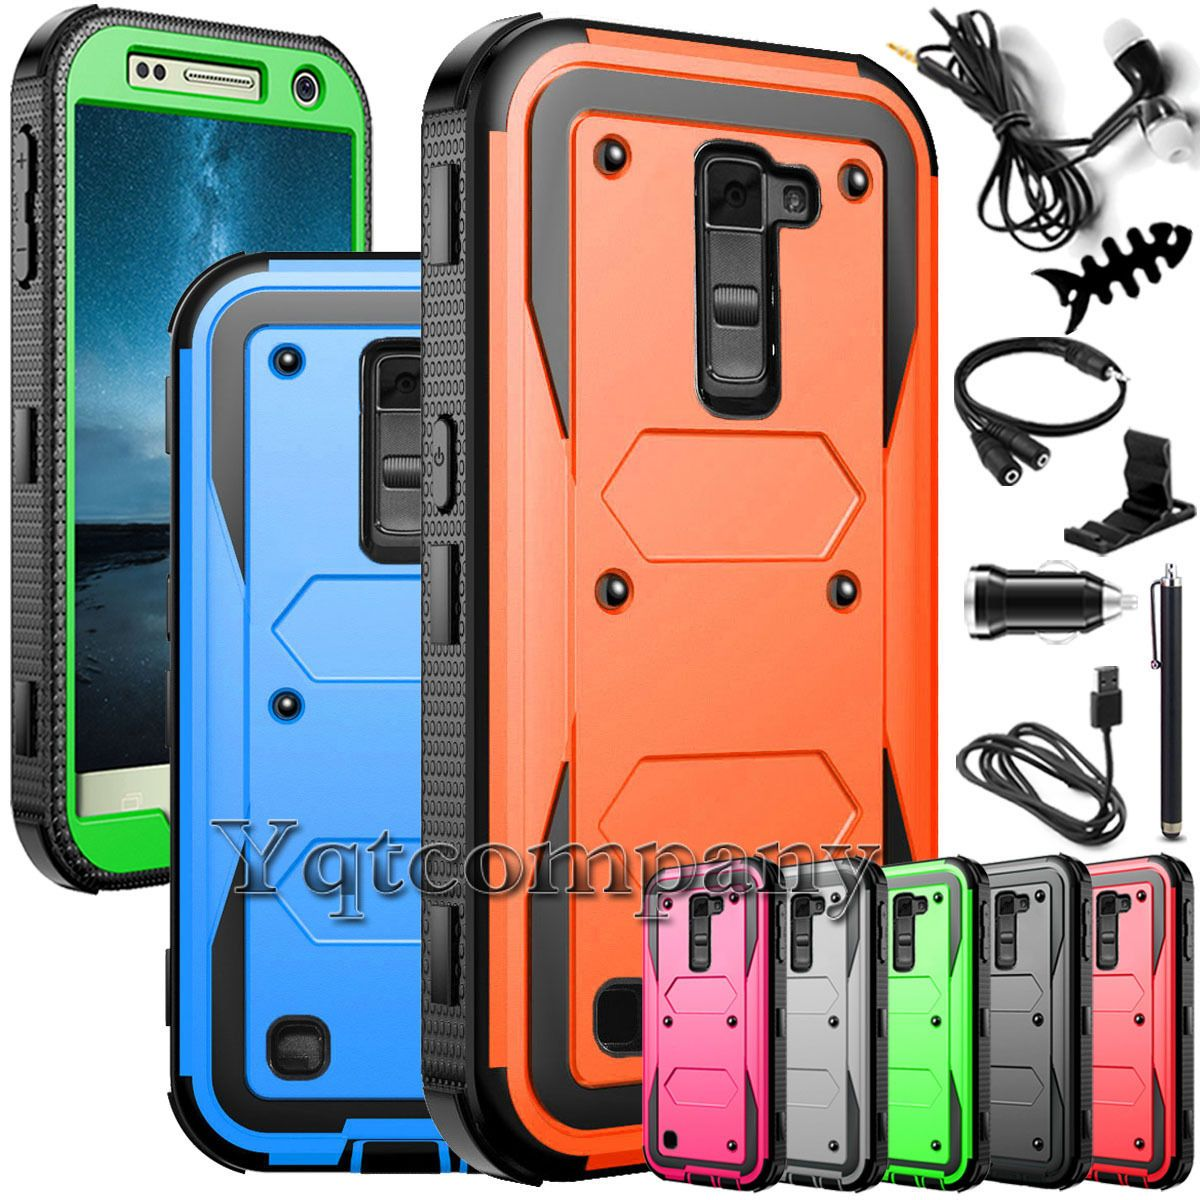 Impact Protective Rugged Hybrid Rubber Hard Case Cover For LG K10 w/ Accessories | eBay